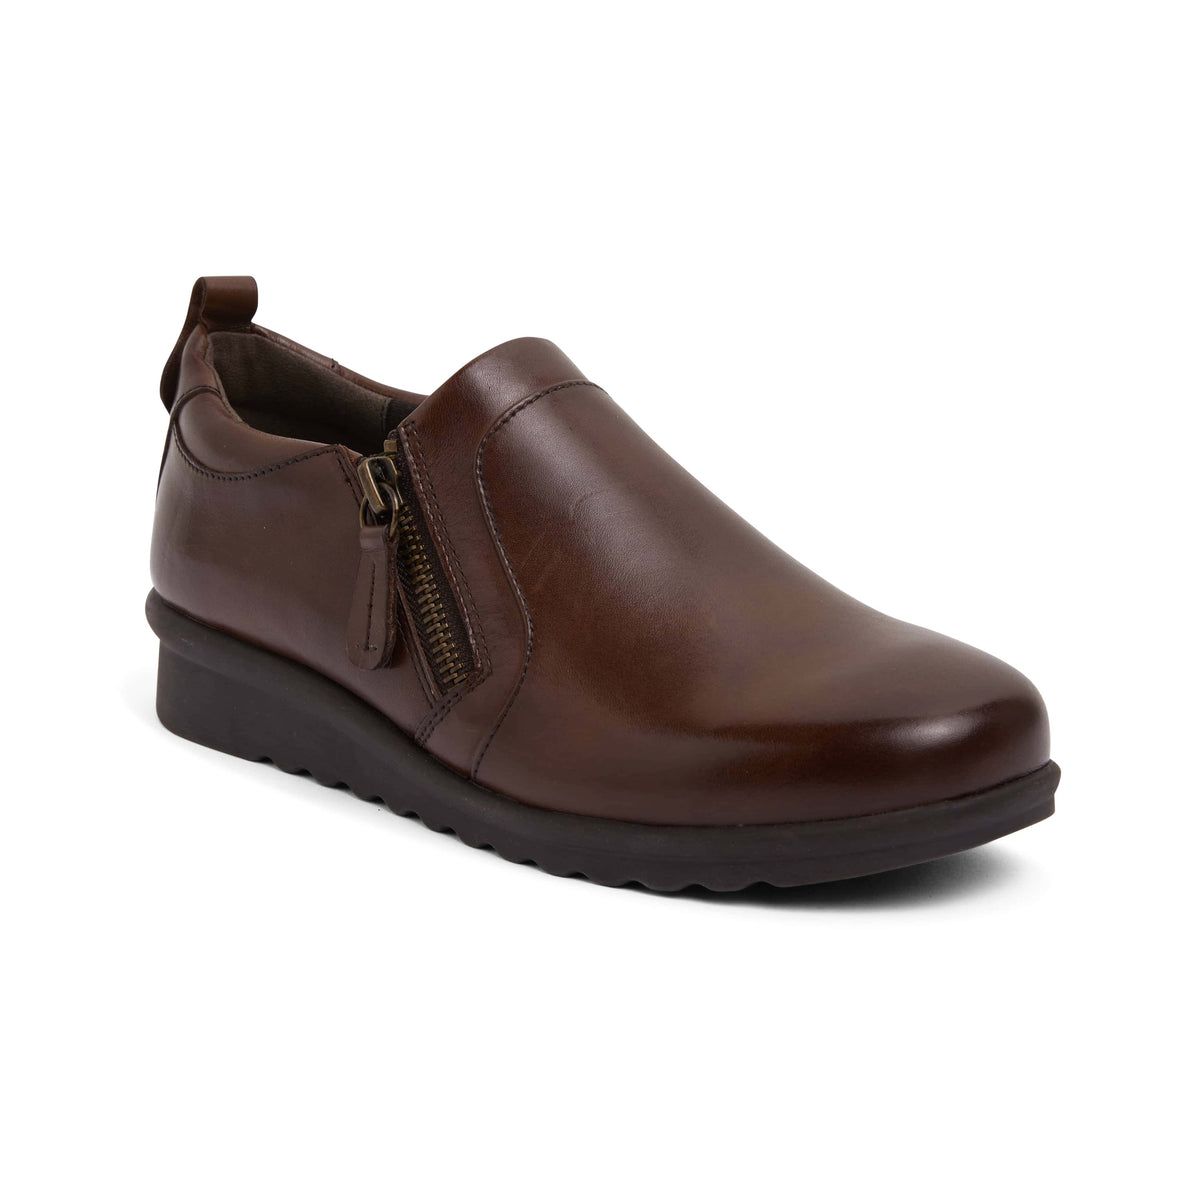 Noble Boot in Brown Leather